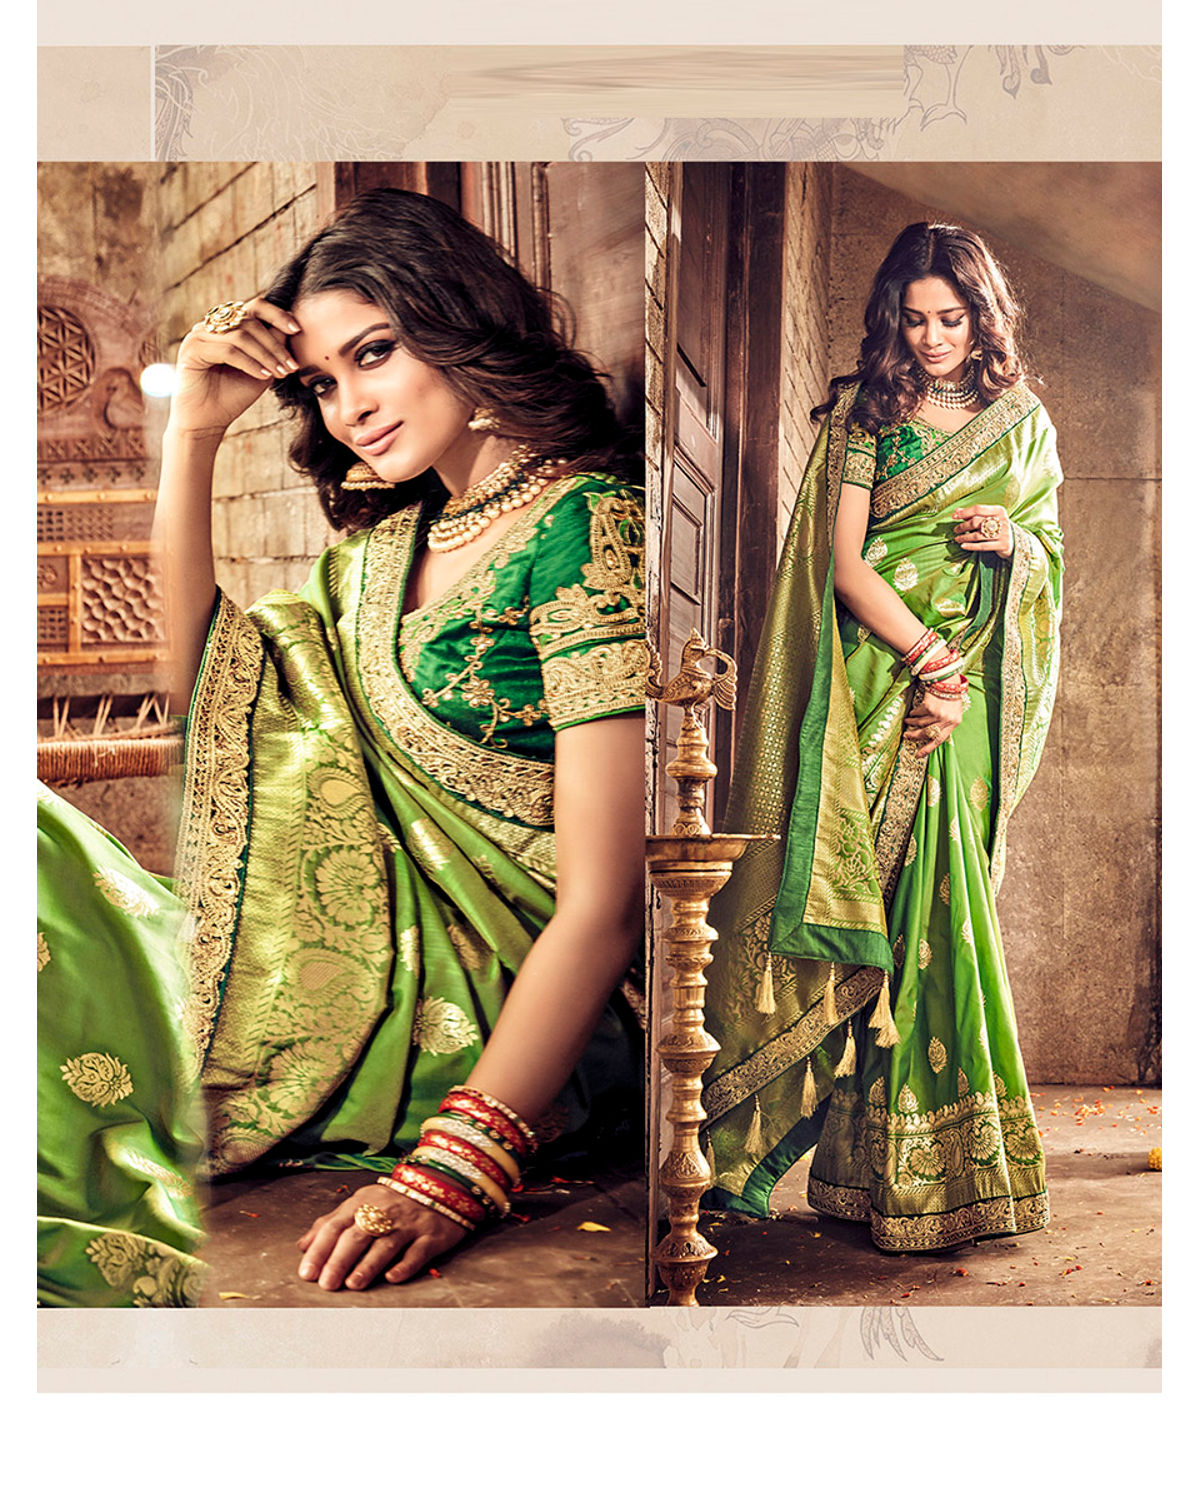 53d6f69fba ... Banarasi Silk Wedding saree with Meenakari weave in Green Color